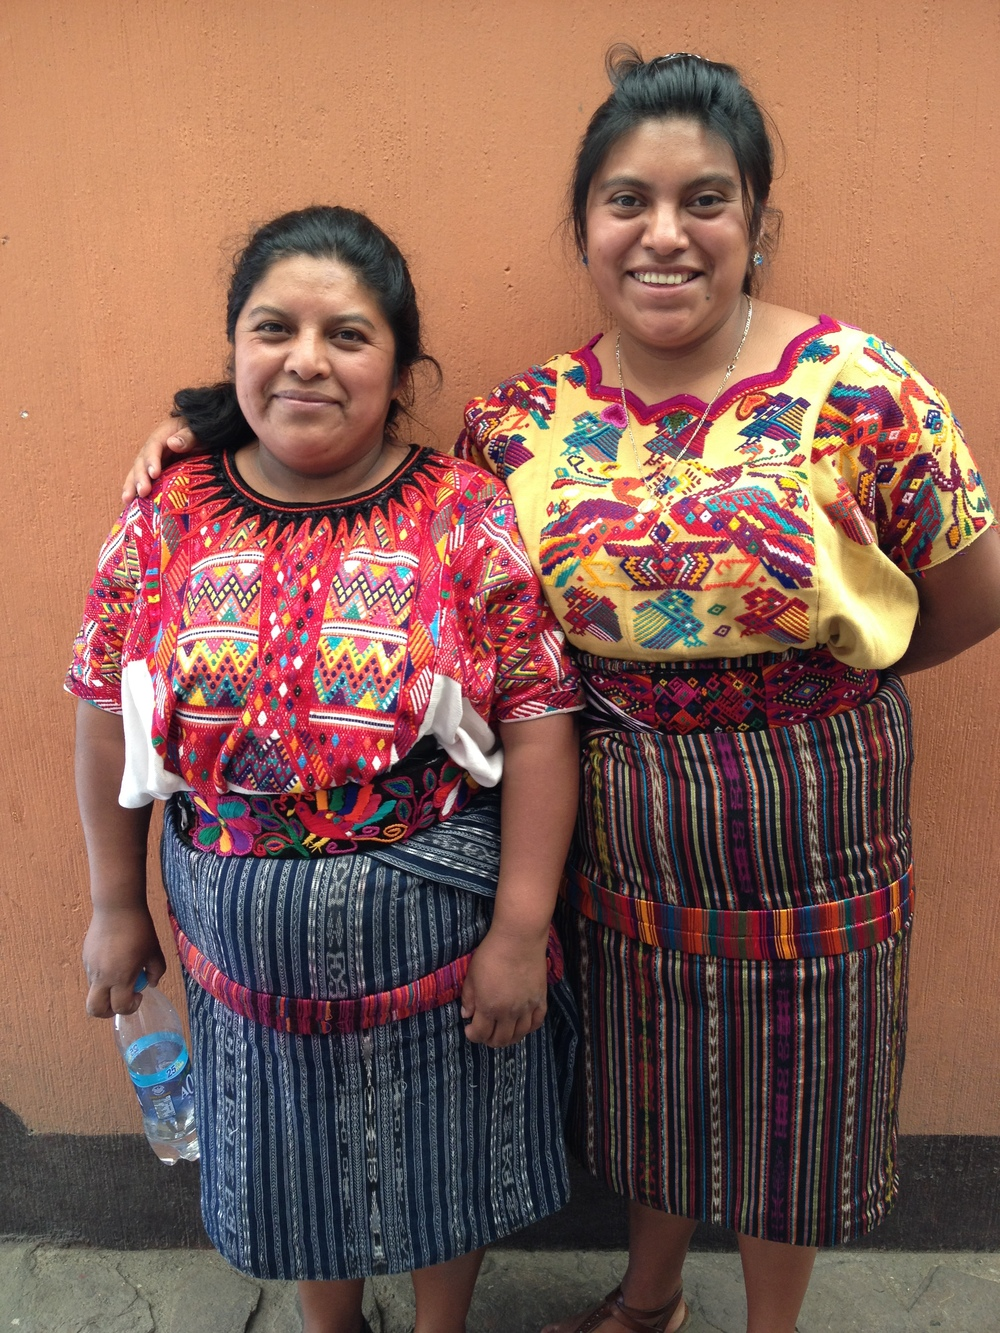 Pictures Of Clothing Worn In The Summer In Guatemala 73